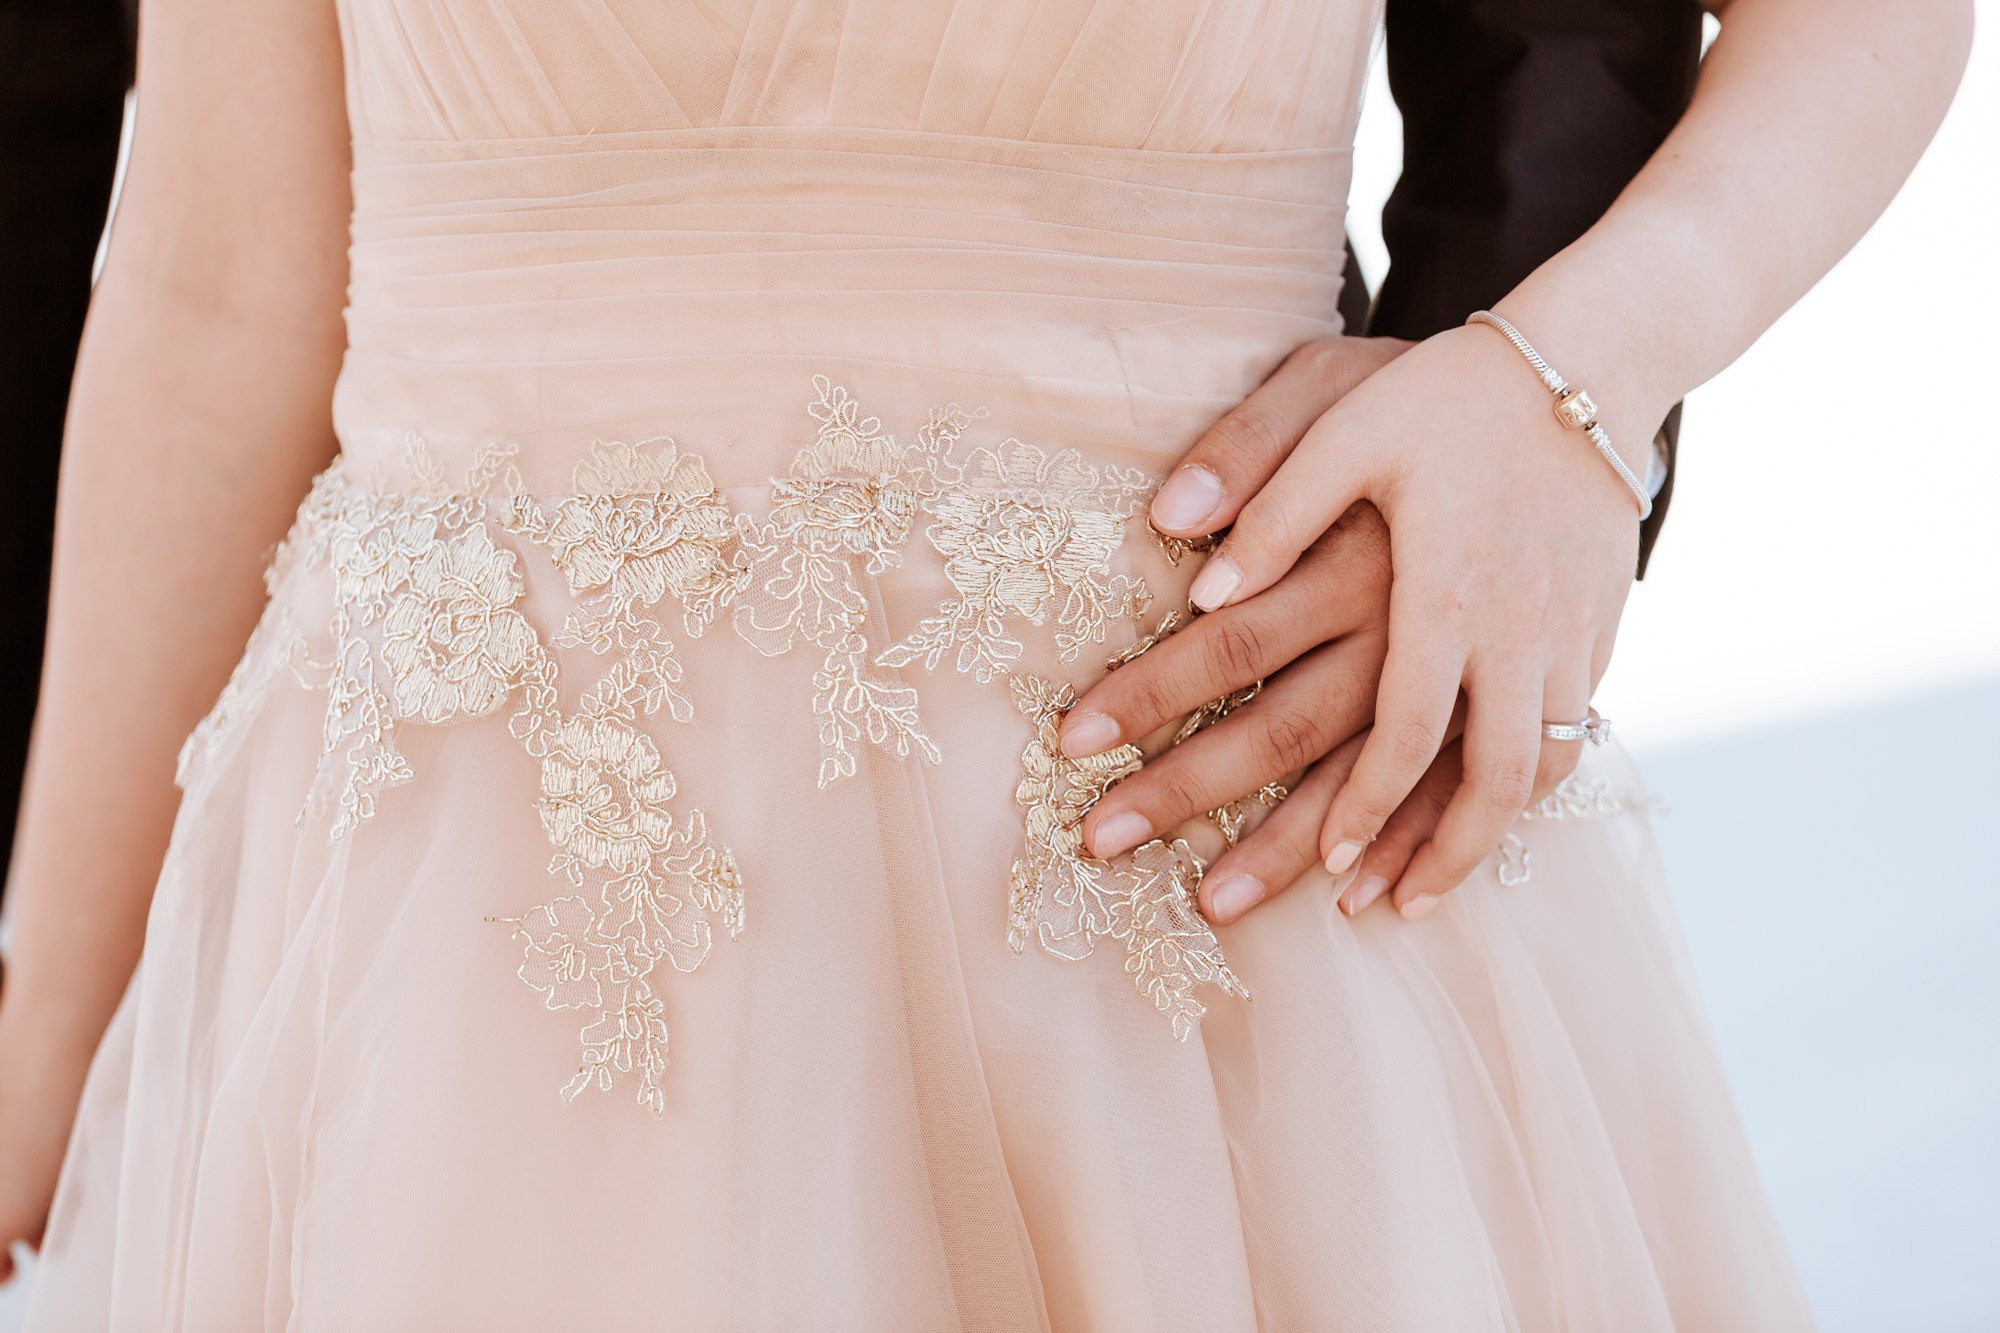 Pre-wedding couple photo session holding hands by the details of the dress captured by Paris Photographer Federico Guendel